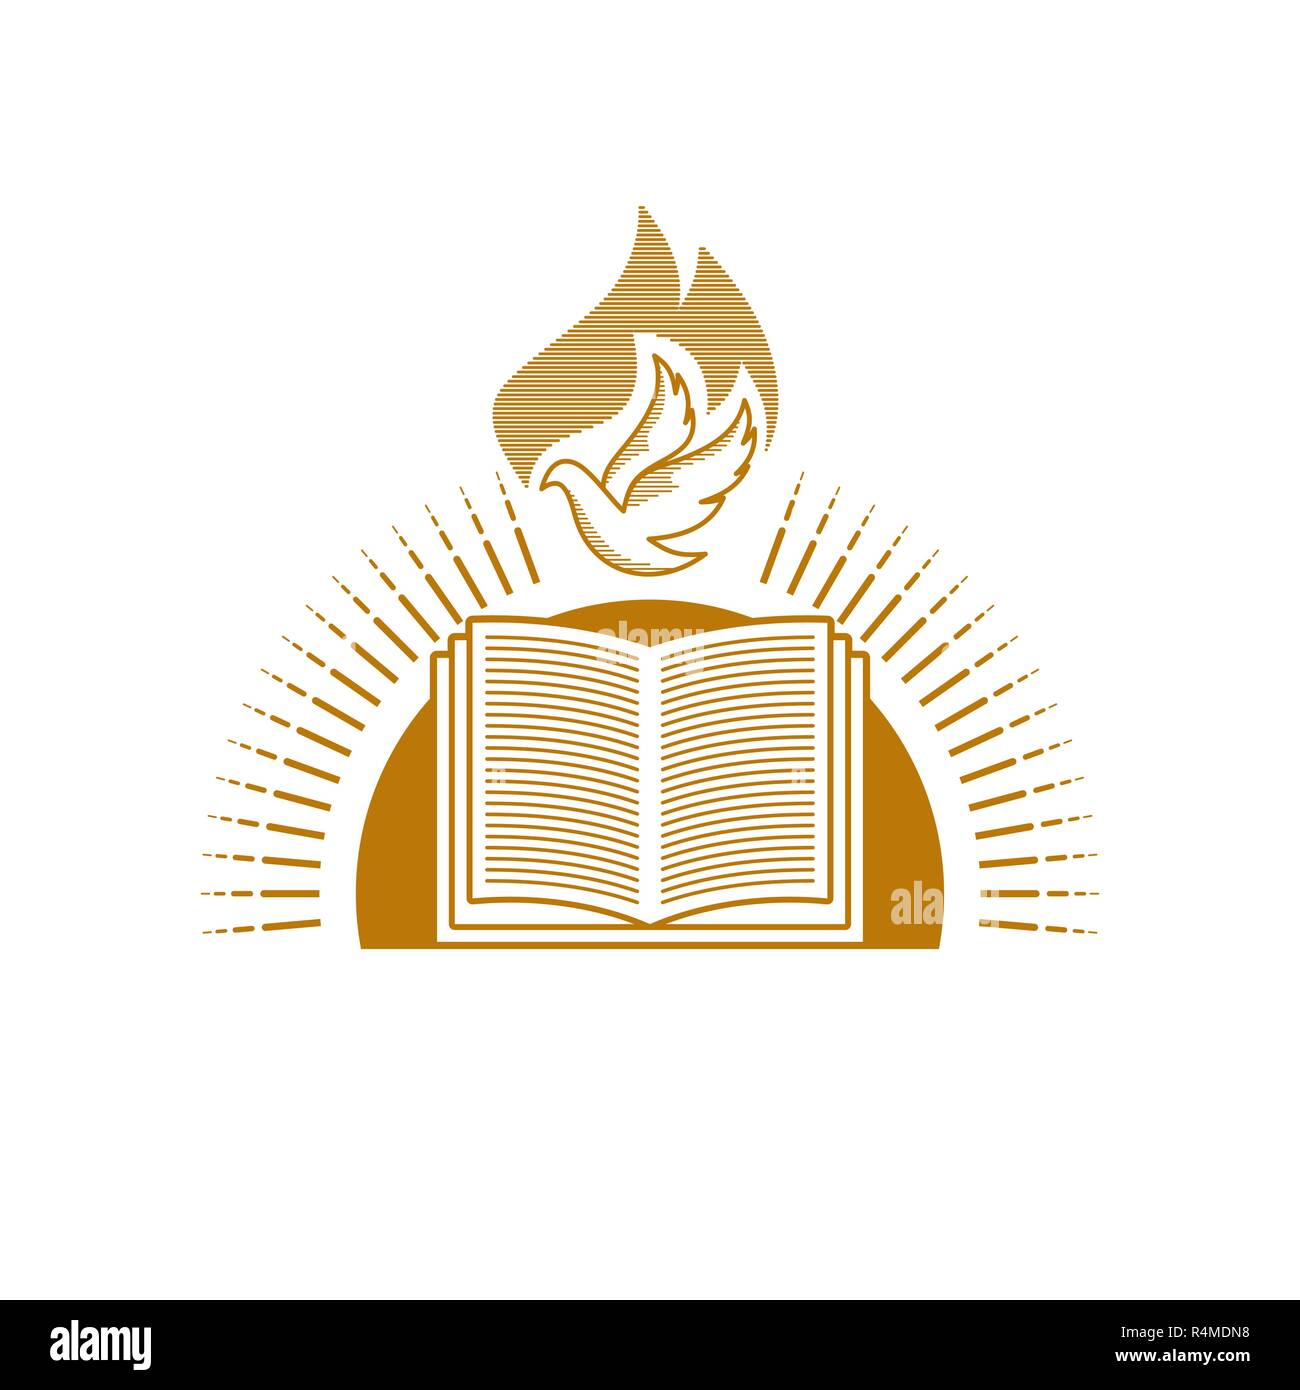 Church logo. Christian symbols. An open Bible and a dove against the backdrop of the sun shines. - Stock Image